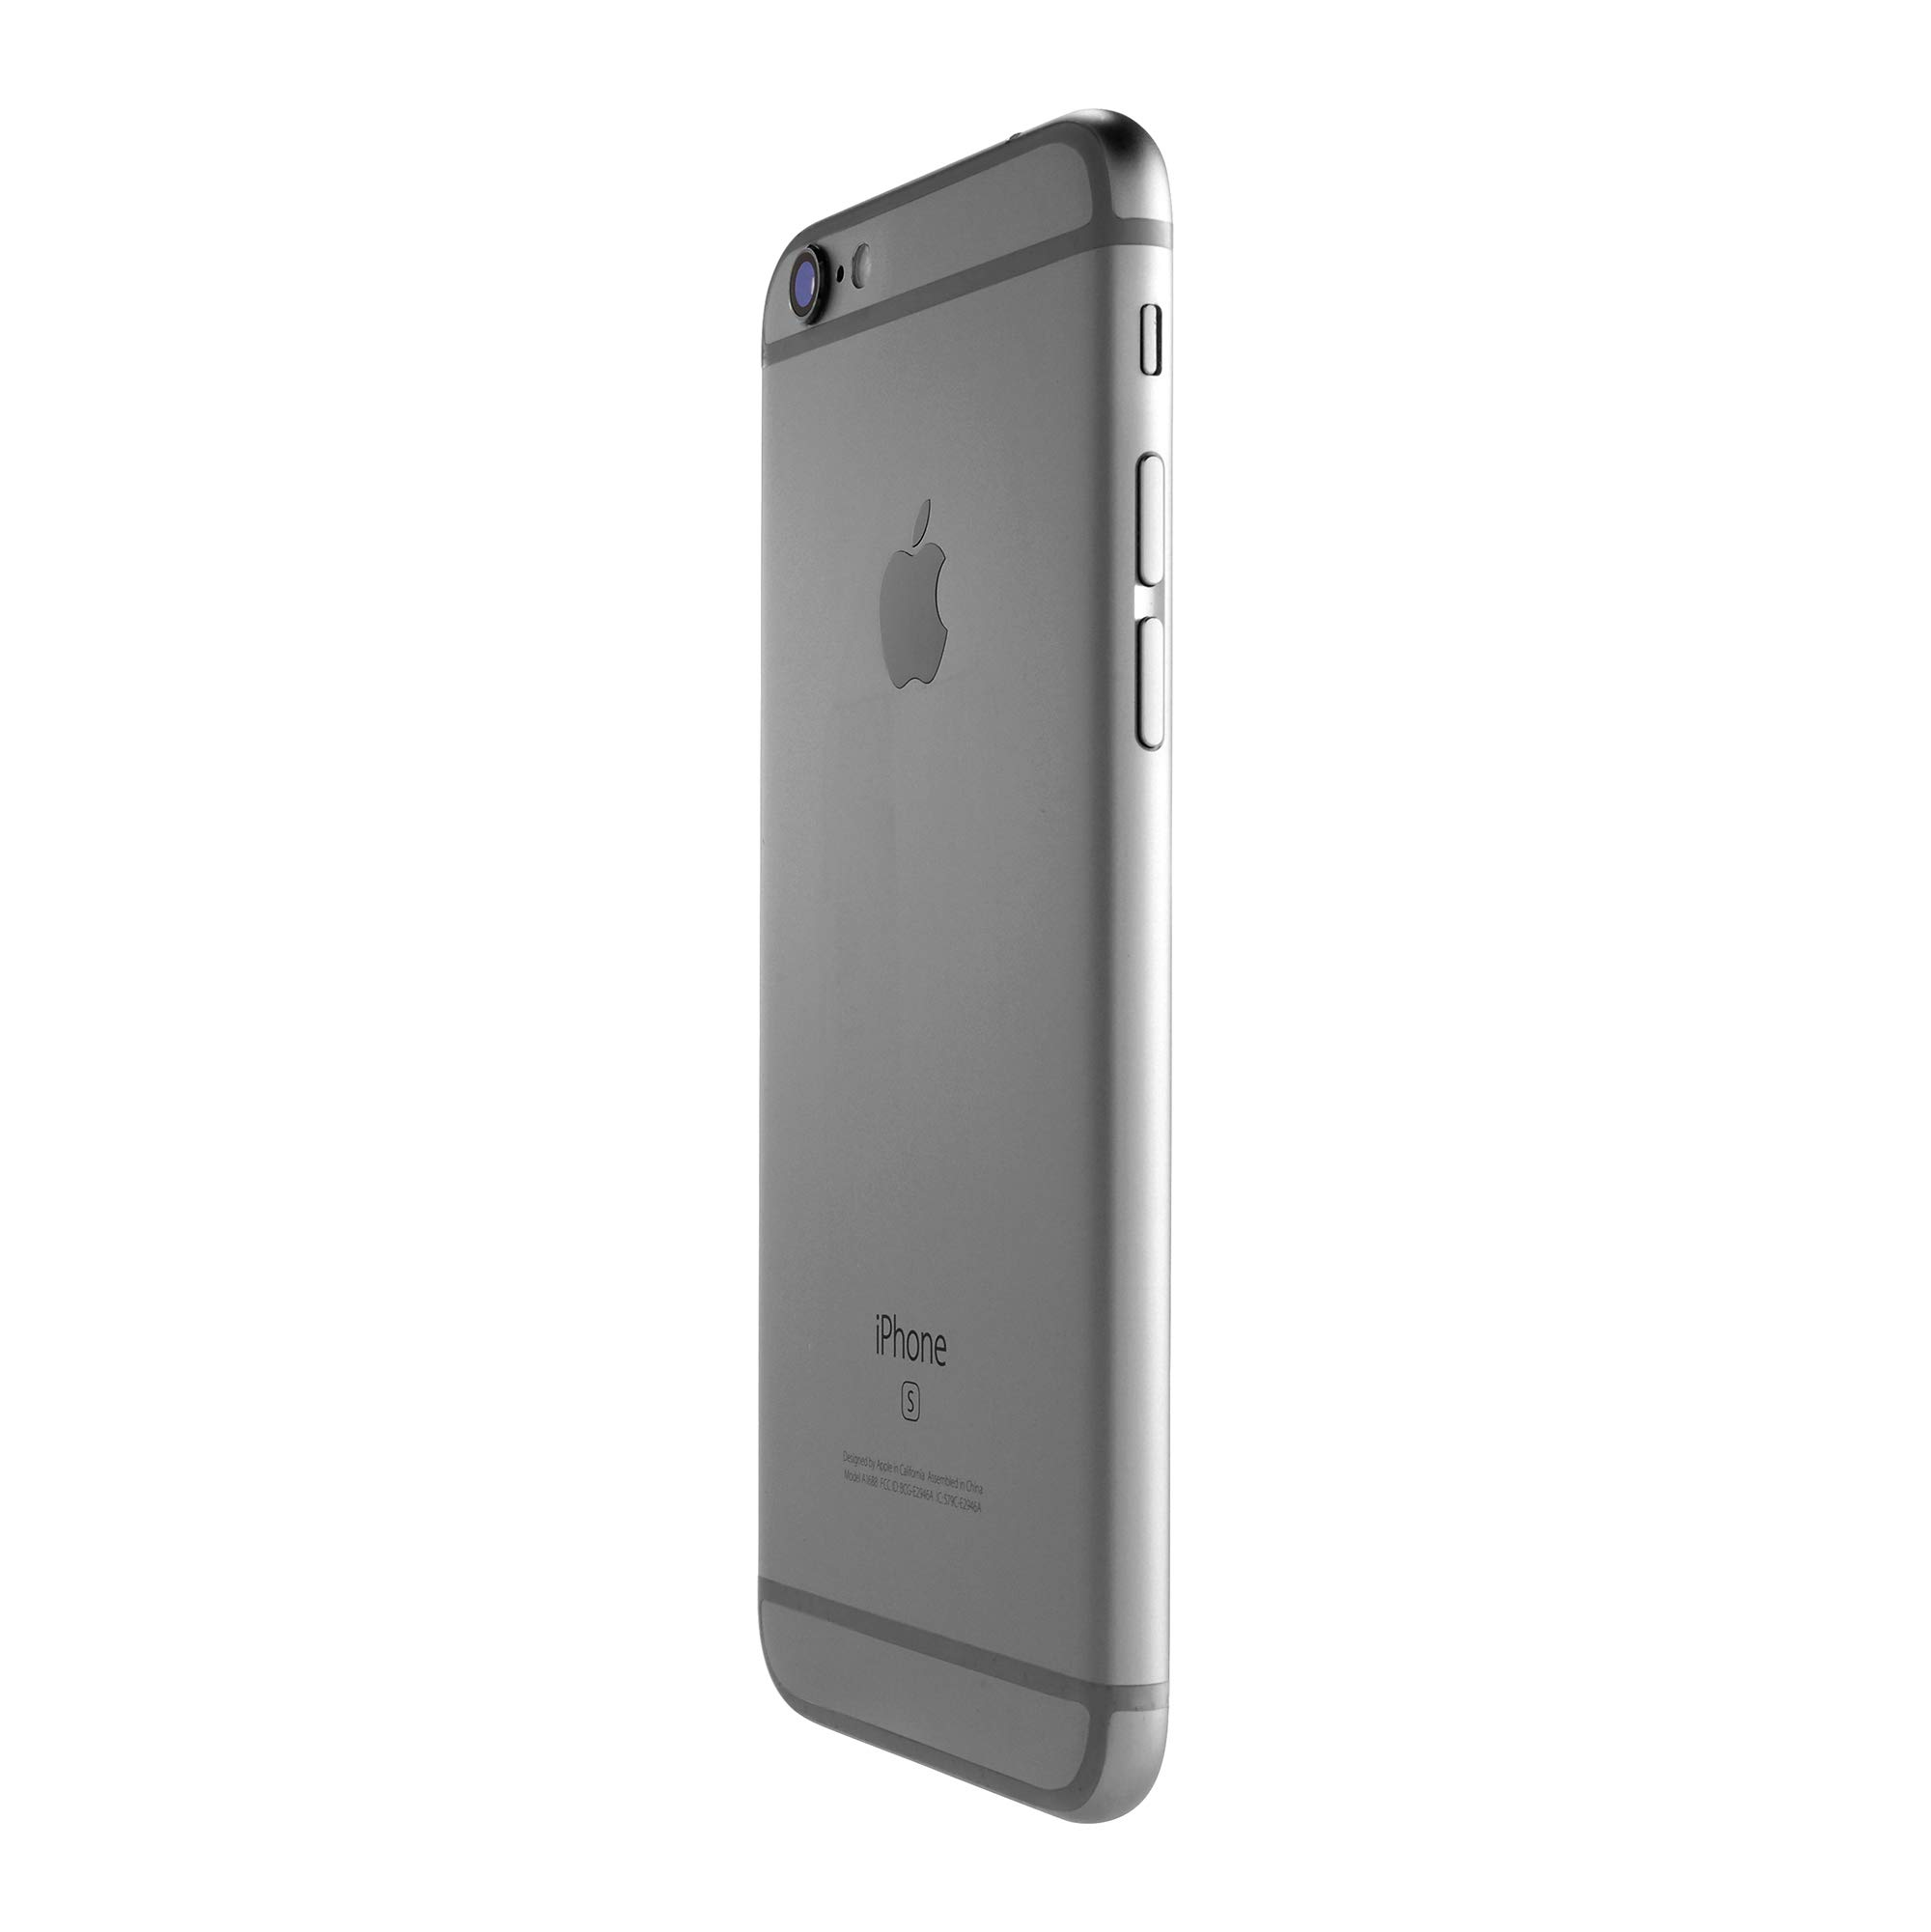 Apple iPhone 6S, Fully Unlocked, 16GB - Space Gray (Renewed) by Apple (Image #3)